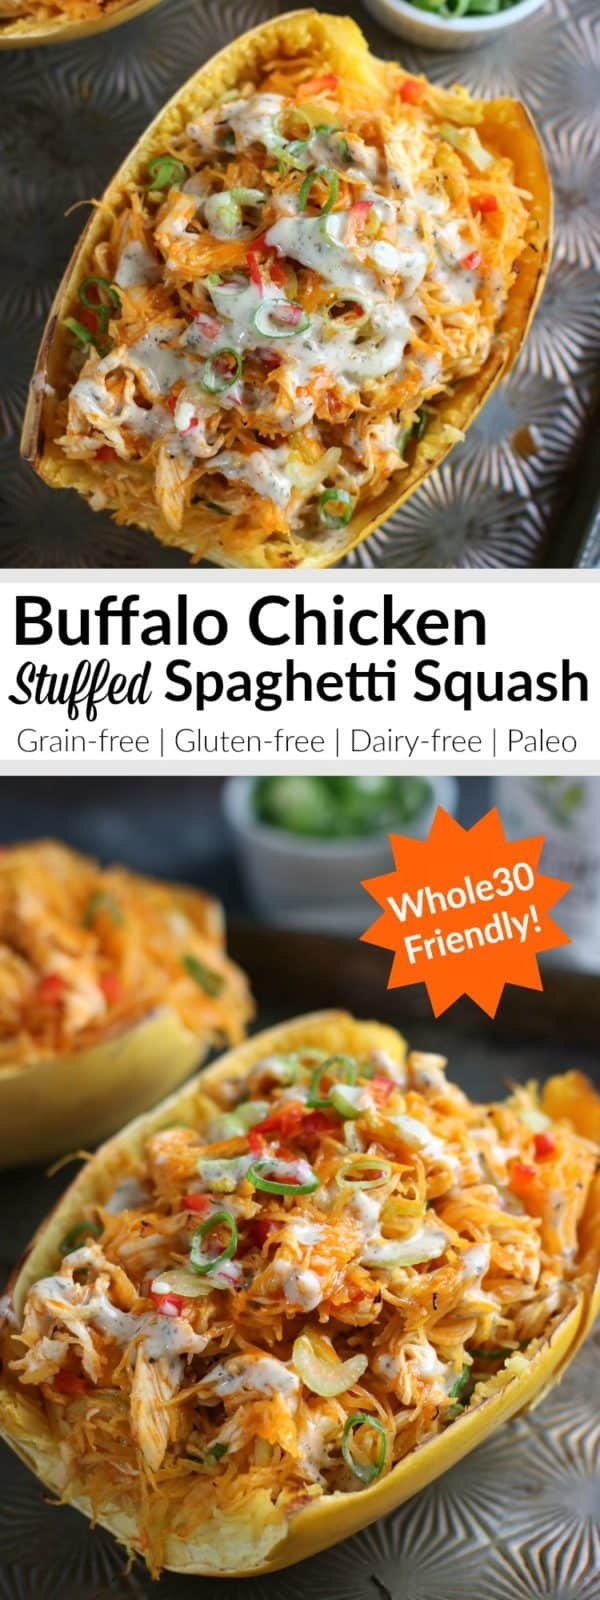 Buffalo Chicken Stuffed Spaghetti Squash - The Real Food Dietitians